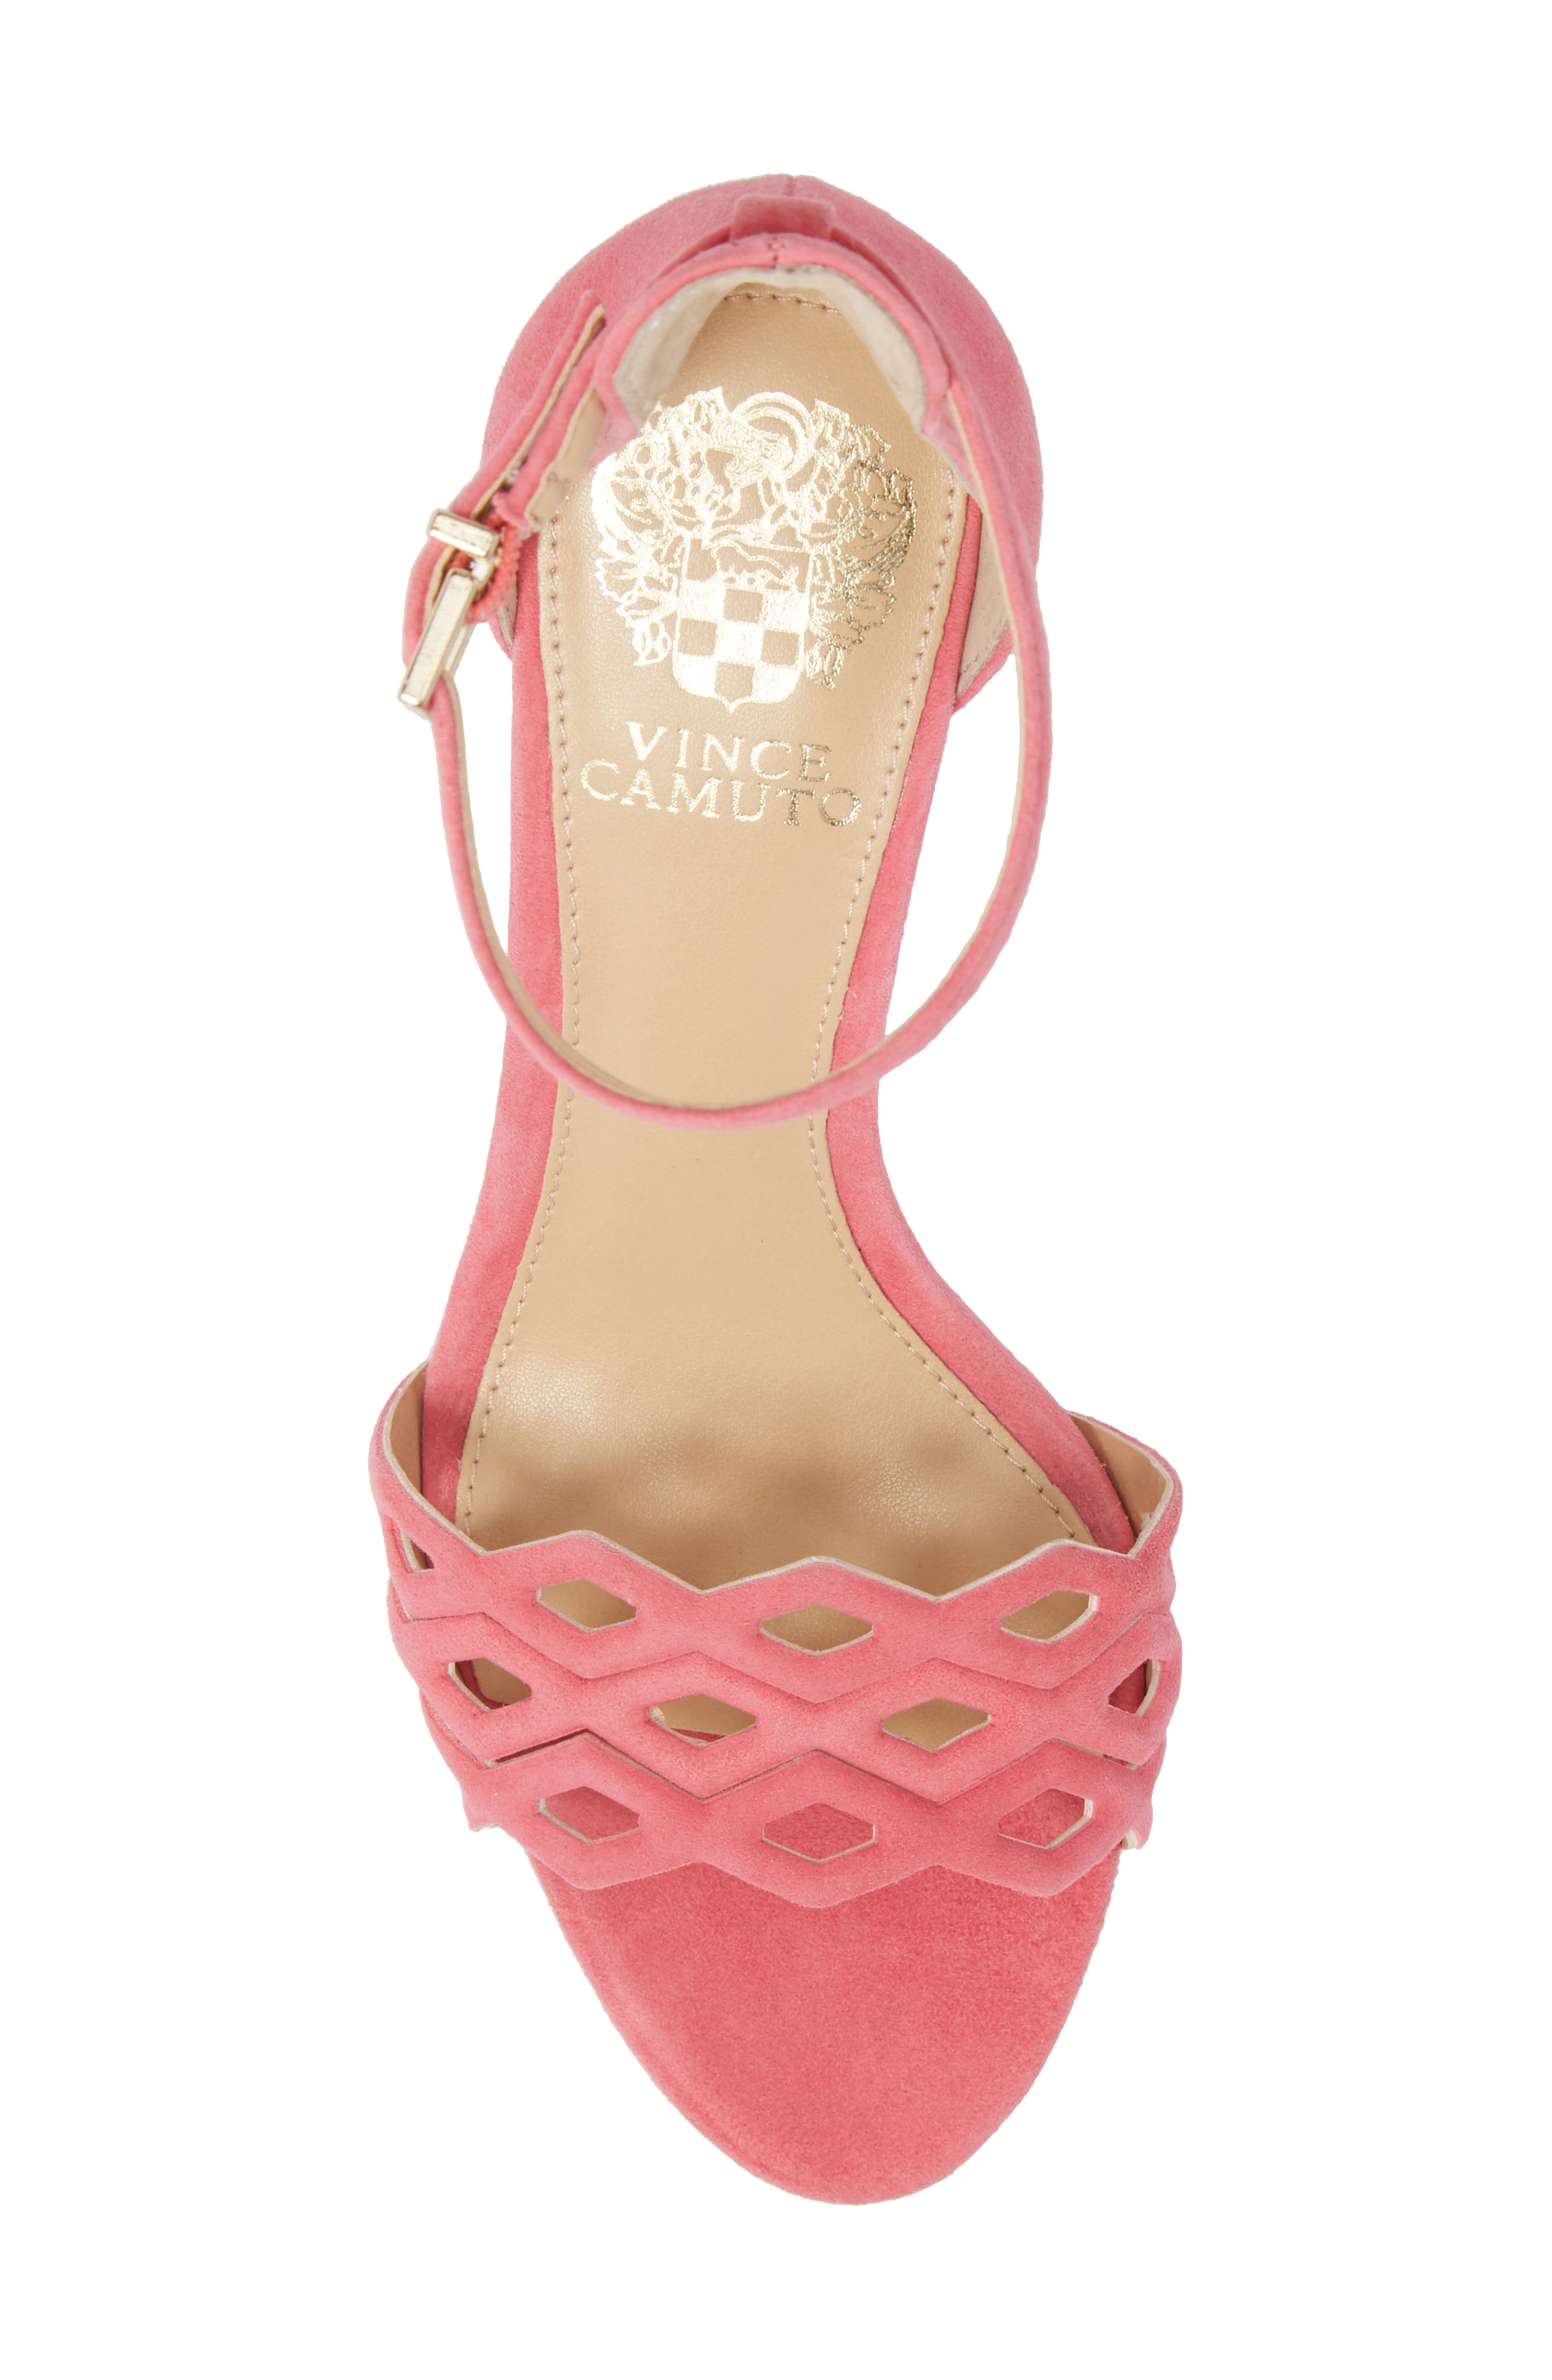 Caveena Block Heel Sandal,                             Alternate thumbnail 5, color,                             Soft Pink Suede